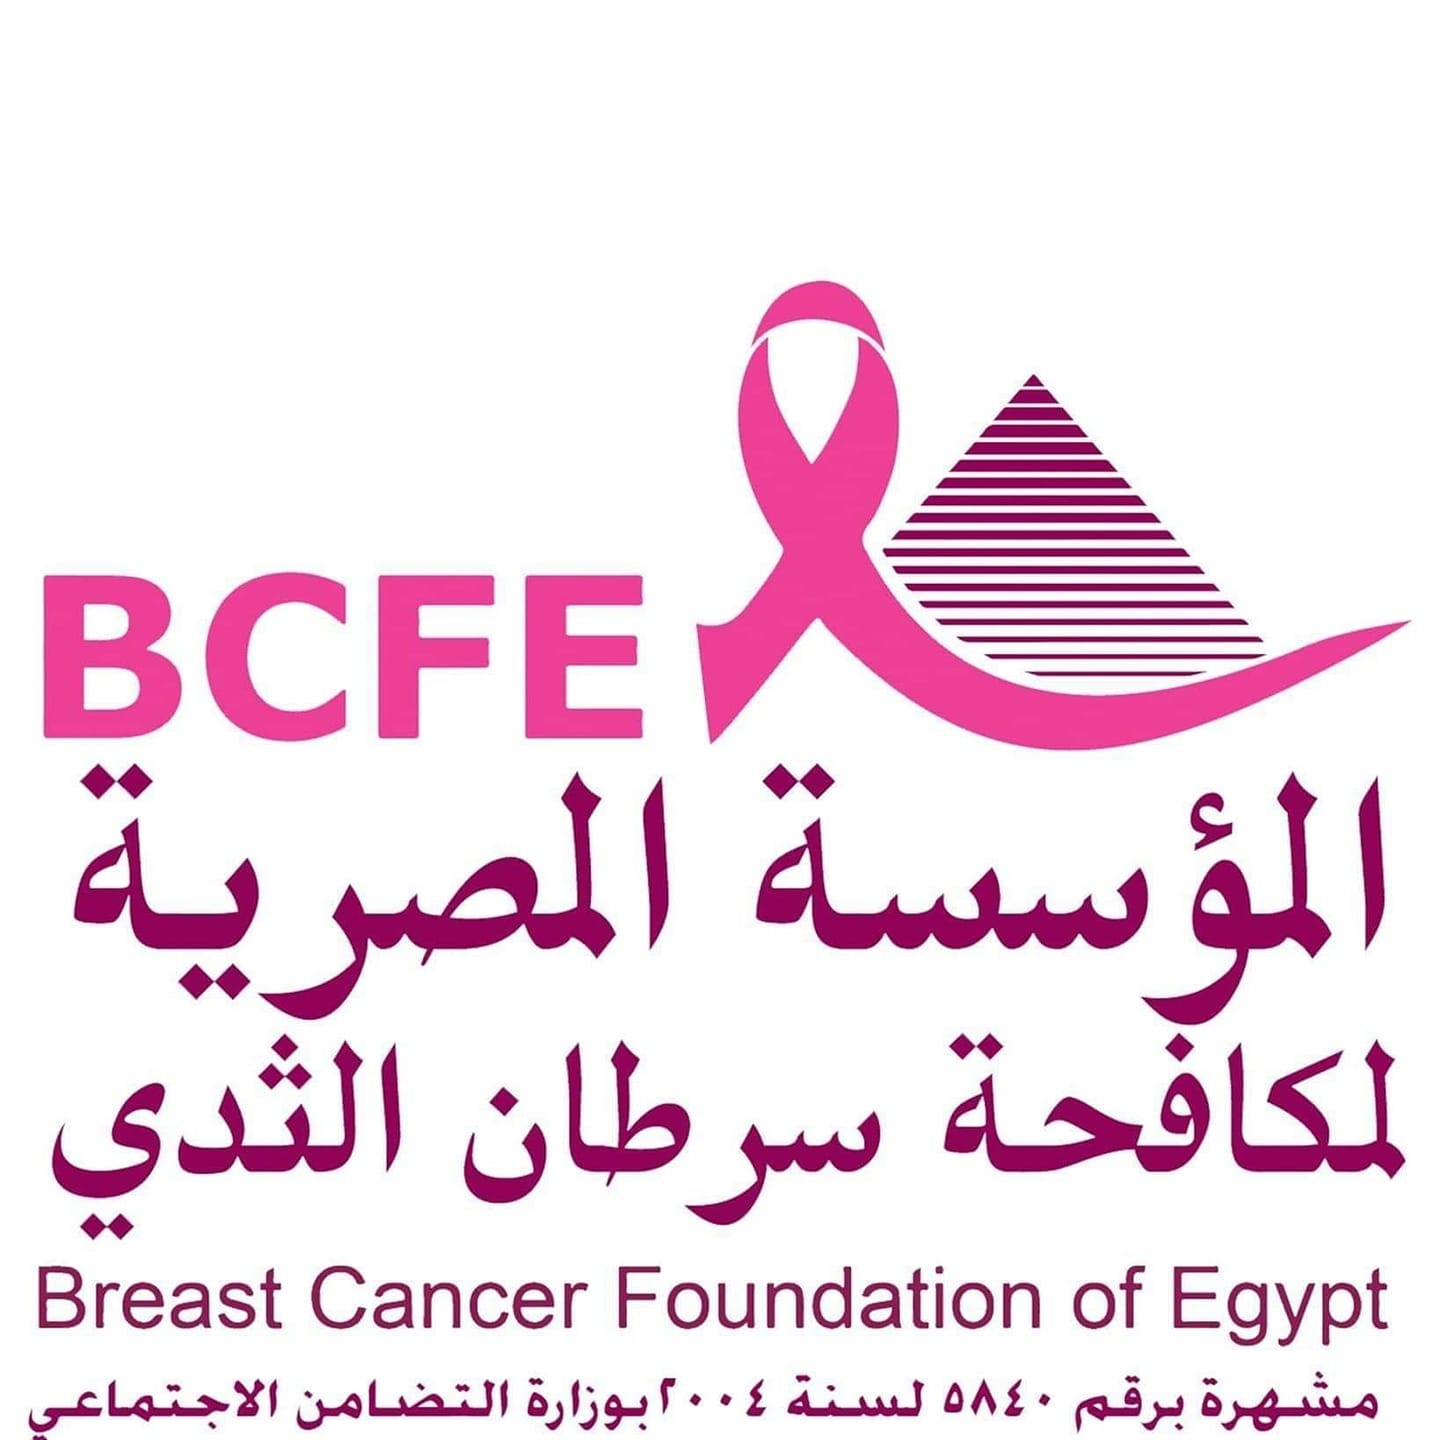 Breast Cancer Founation of Egypt